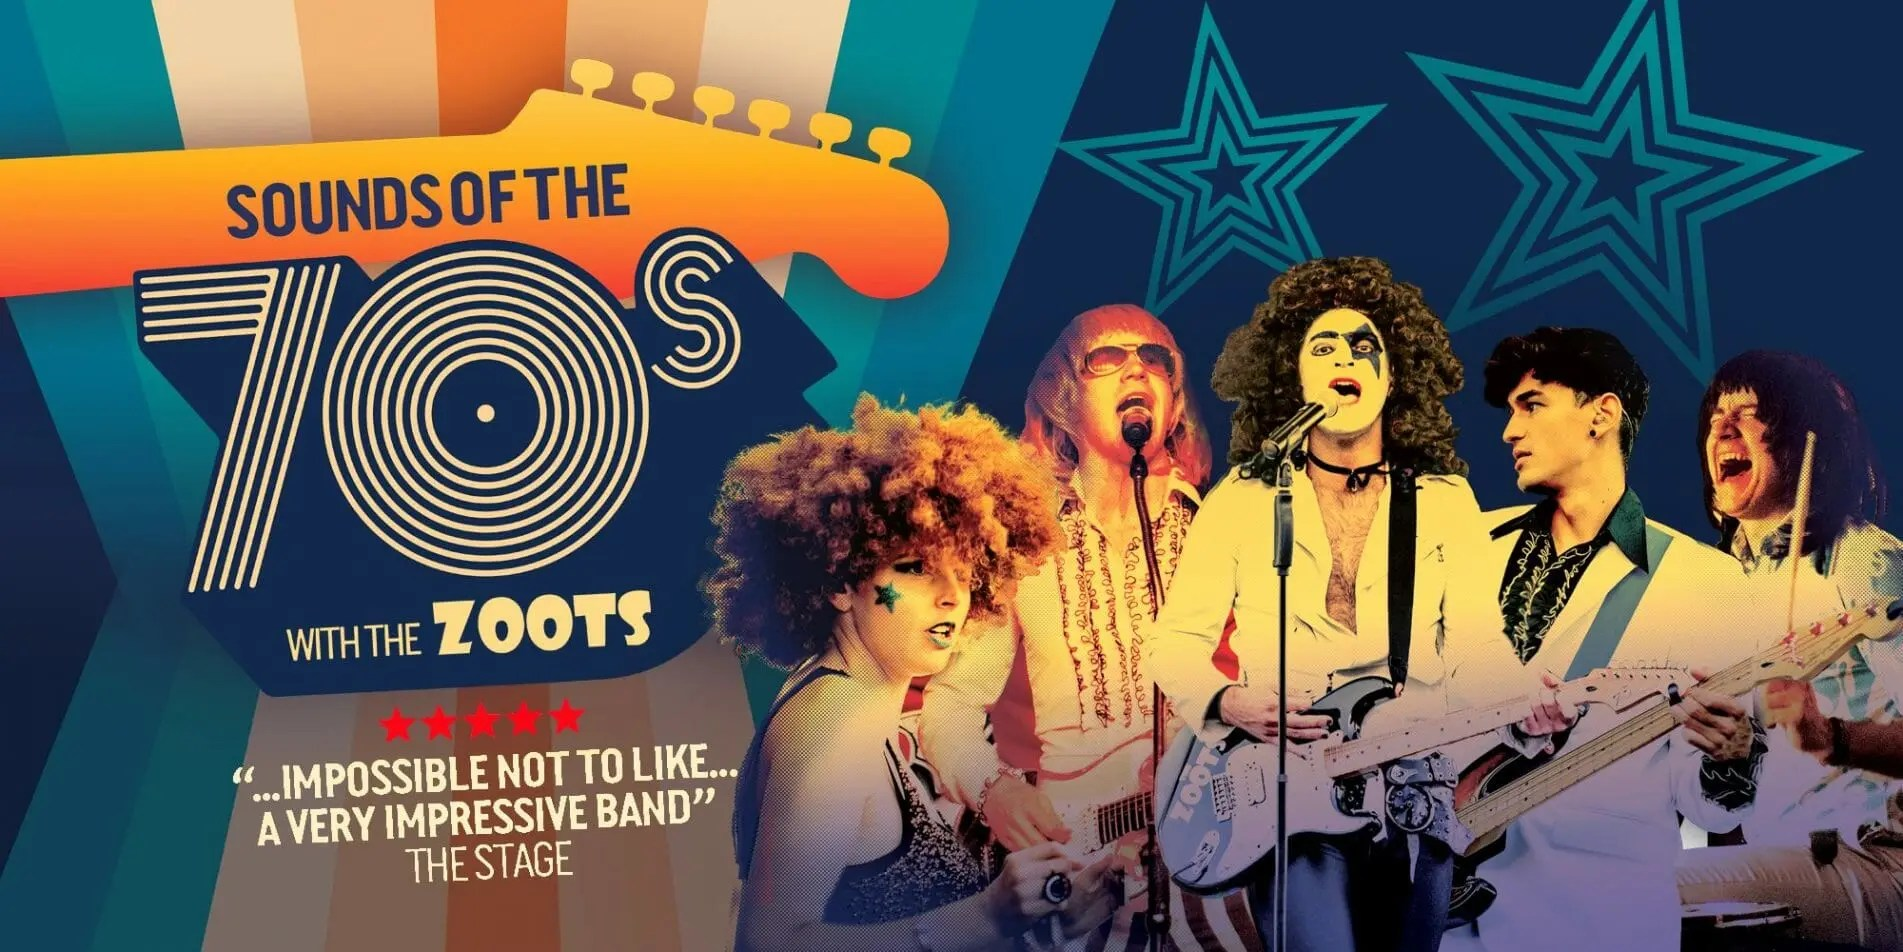 The Zoots Sounds of the 70s tribute show